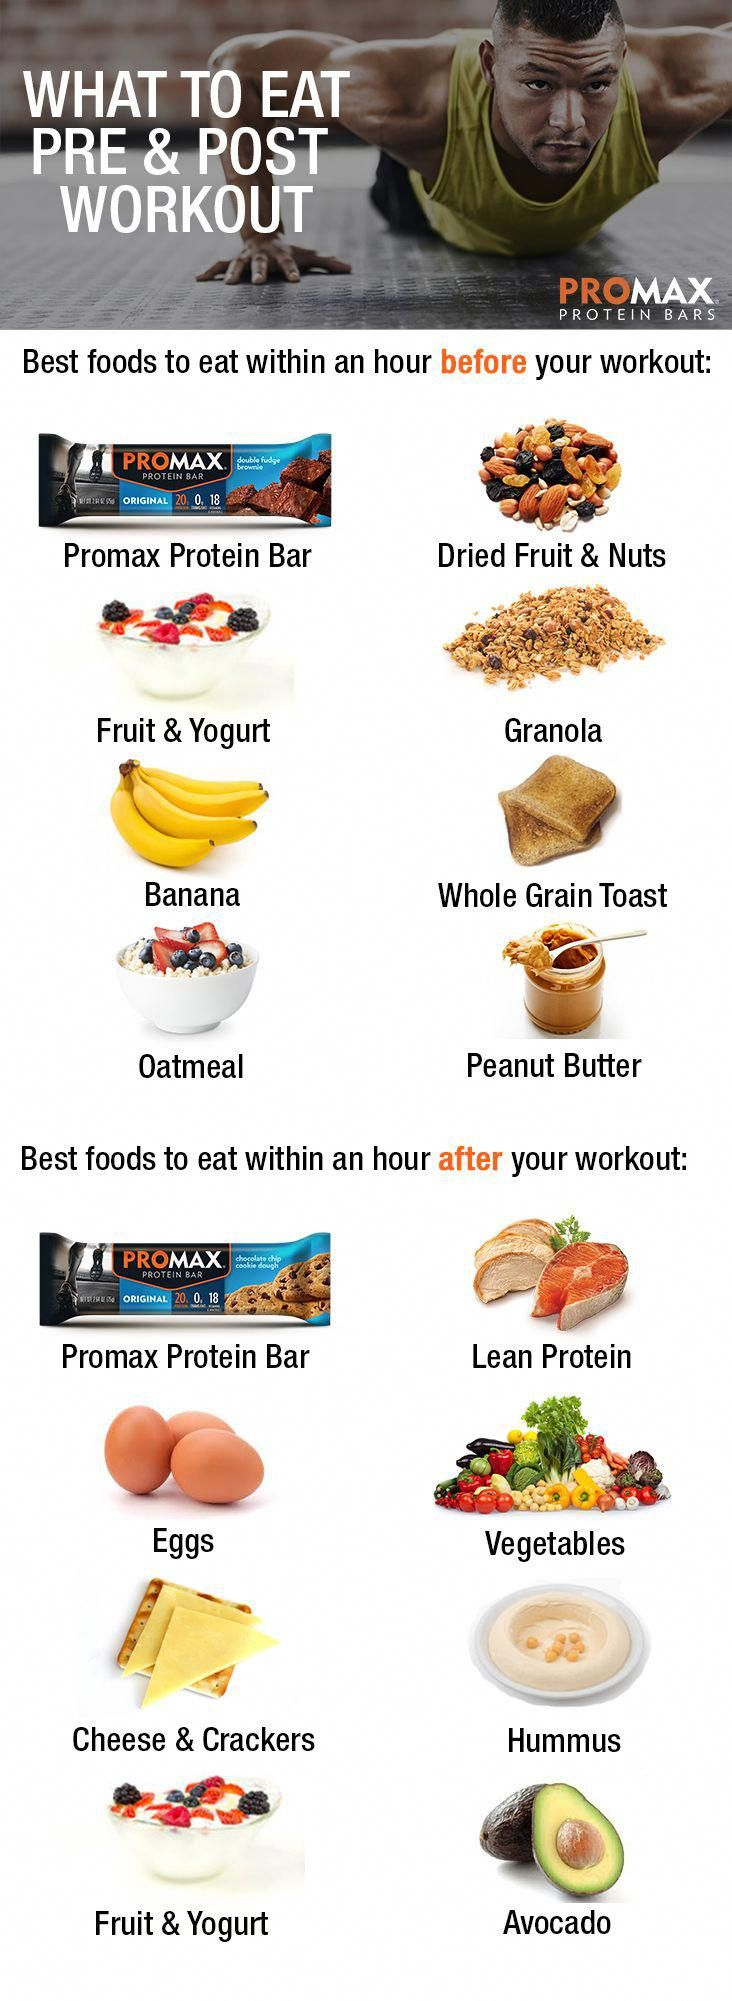 Happy Diet Plan For Teens Caloriedeficit Weightlossplandiet Post Workout Food Workout Food After Workout Food